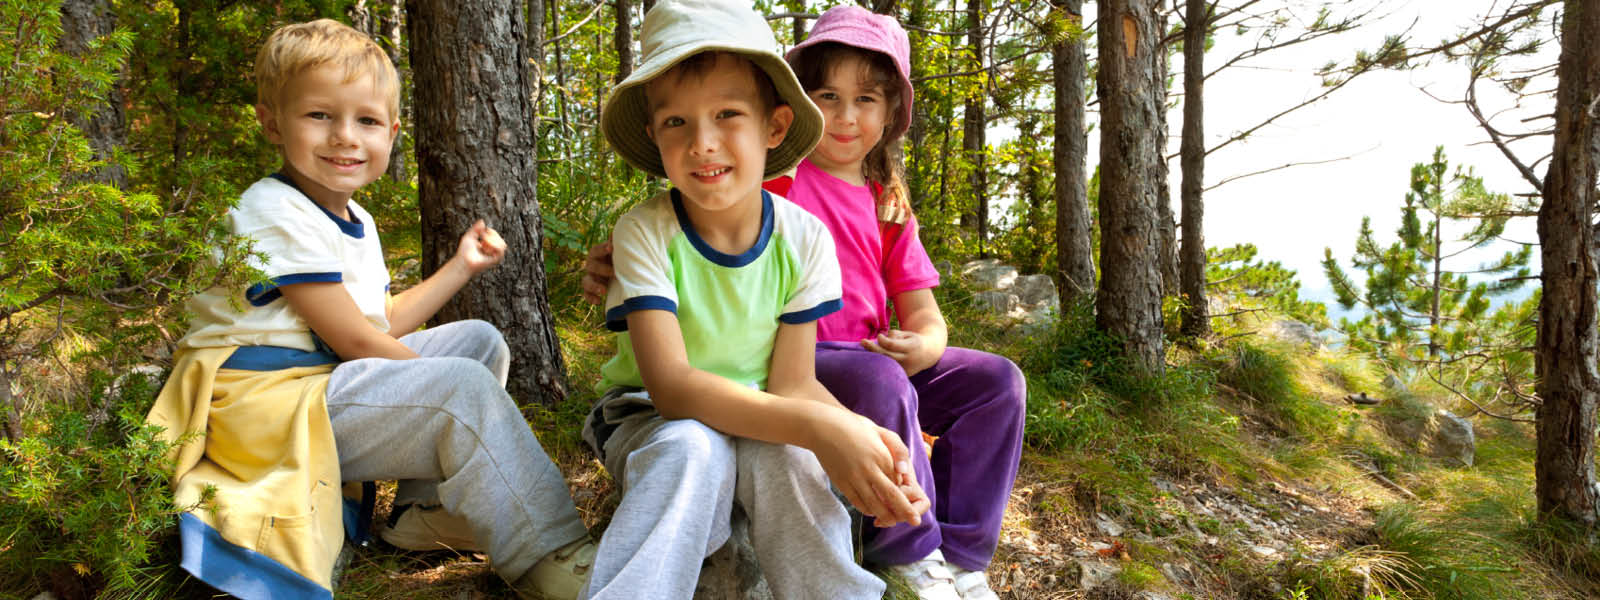 A Busy Mom's Guide to New York City Summer Day Camps 2014 - Part 1: How to Choose the Best Camp for You and Your Child